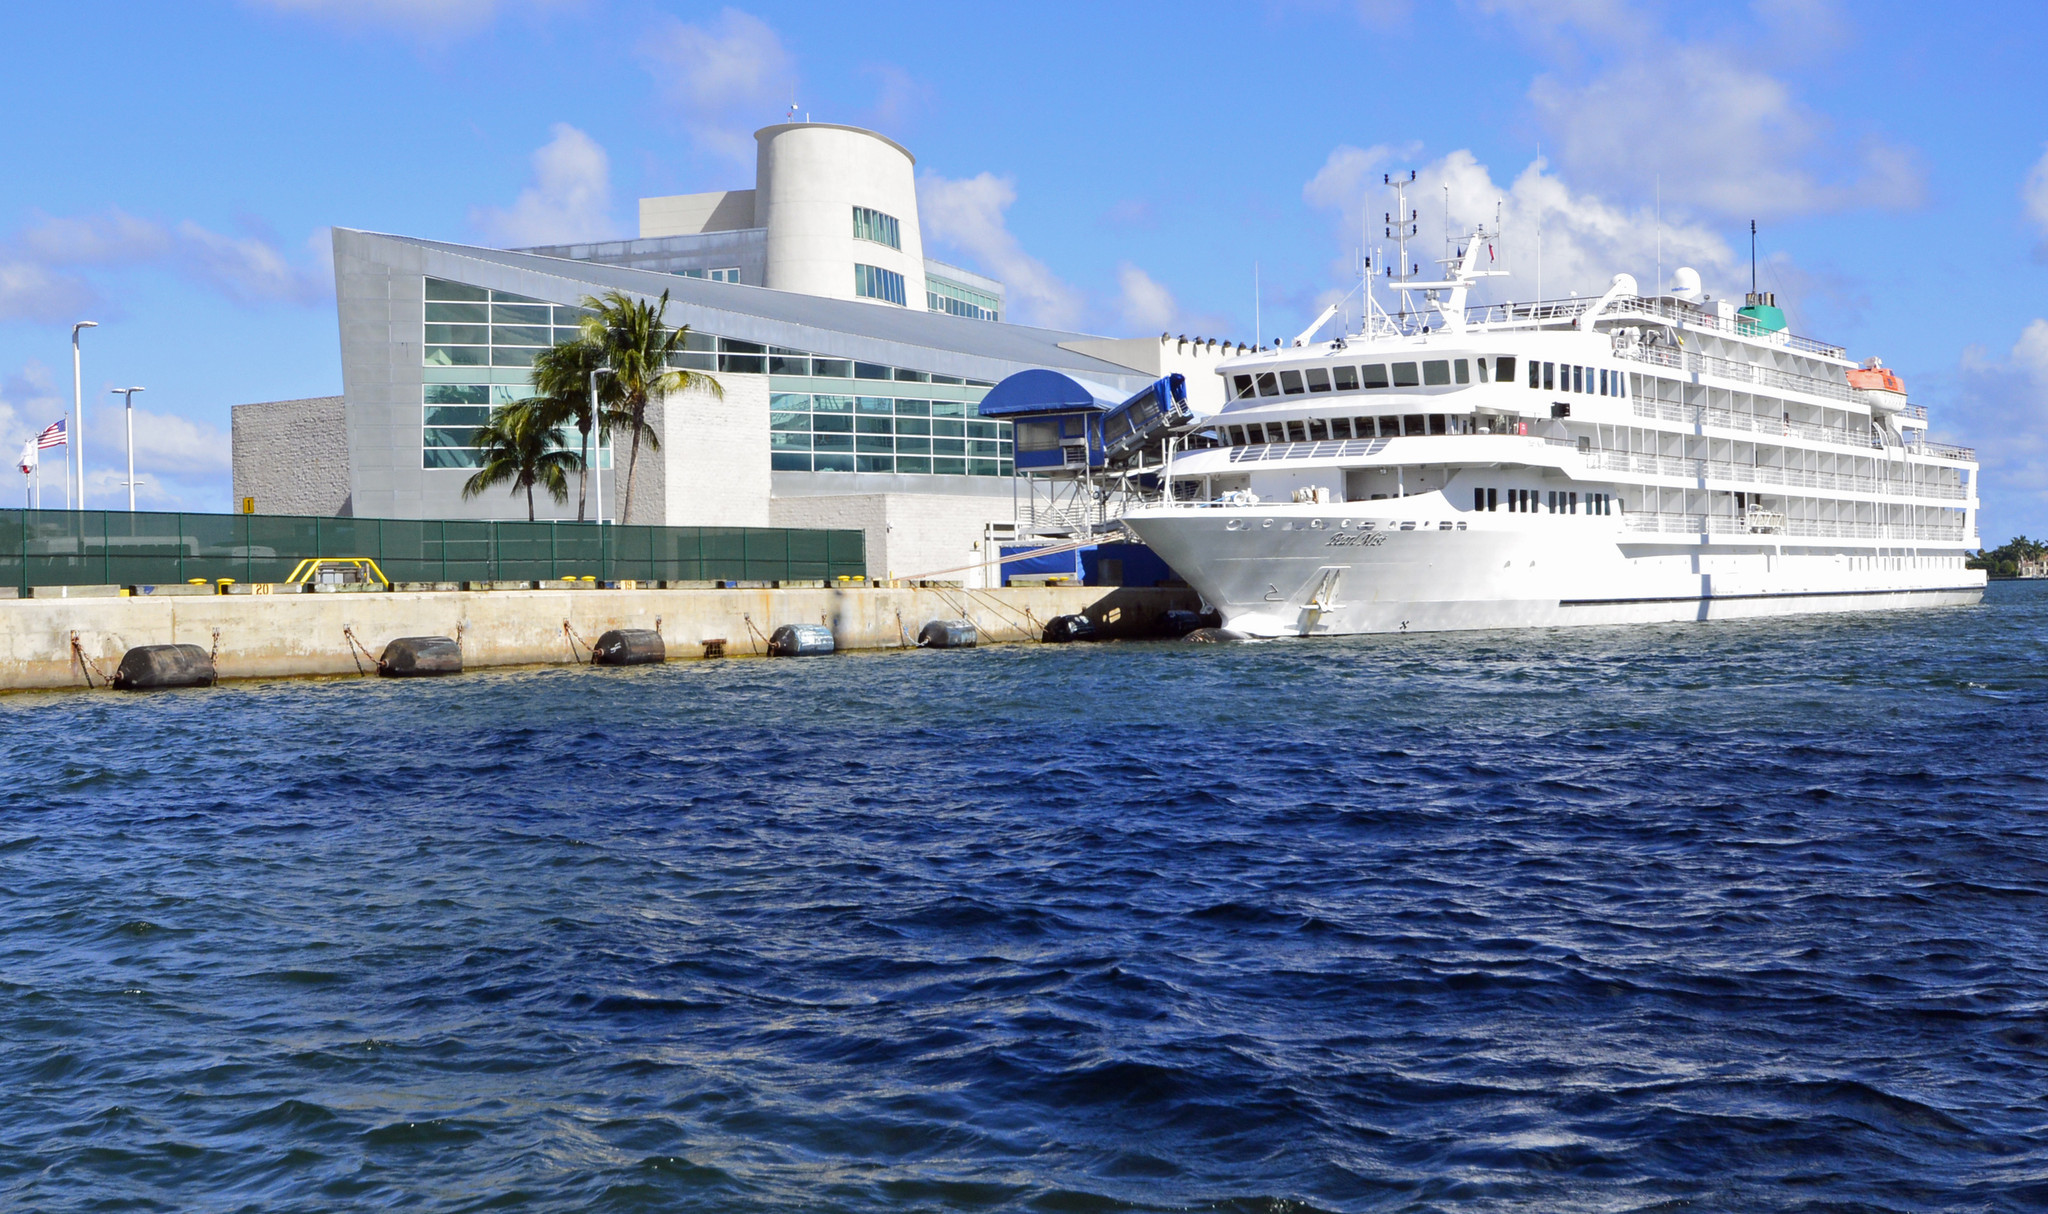 Cruise Ship Possibly Bound For Cuba Makes First Call At Port Of Palm Beach Sun Sentinel